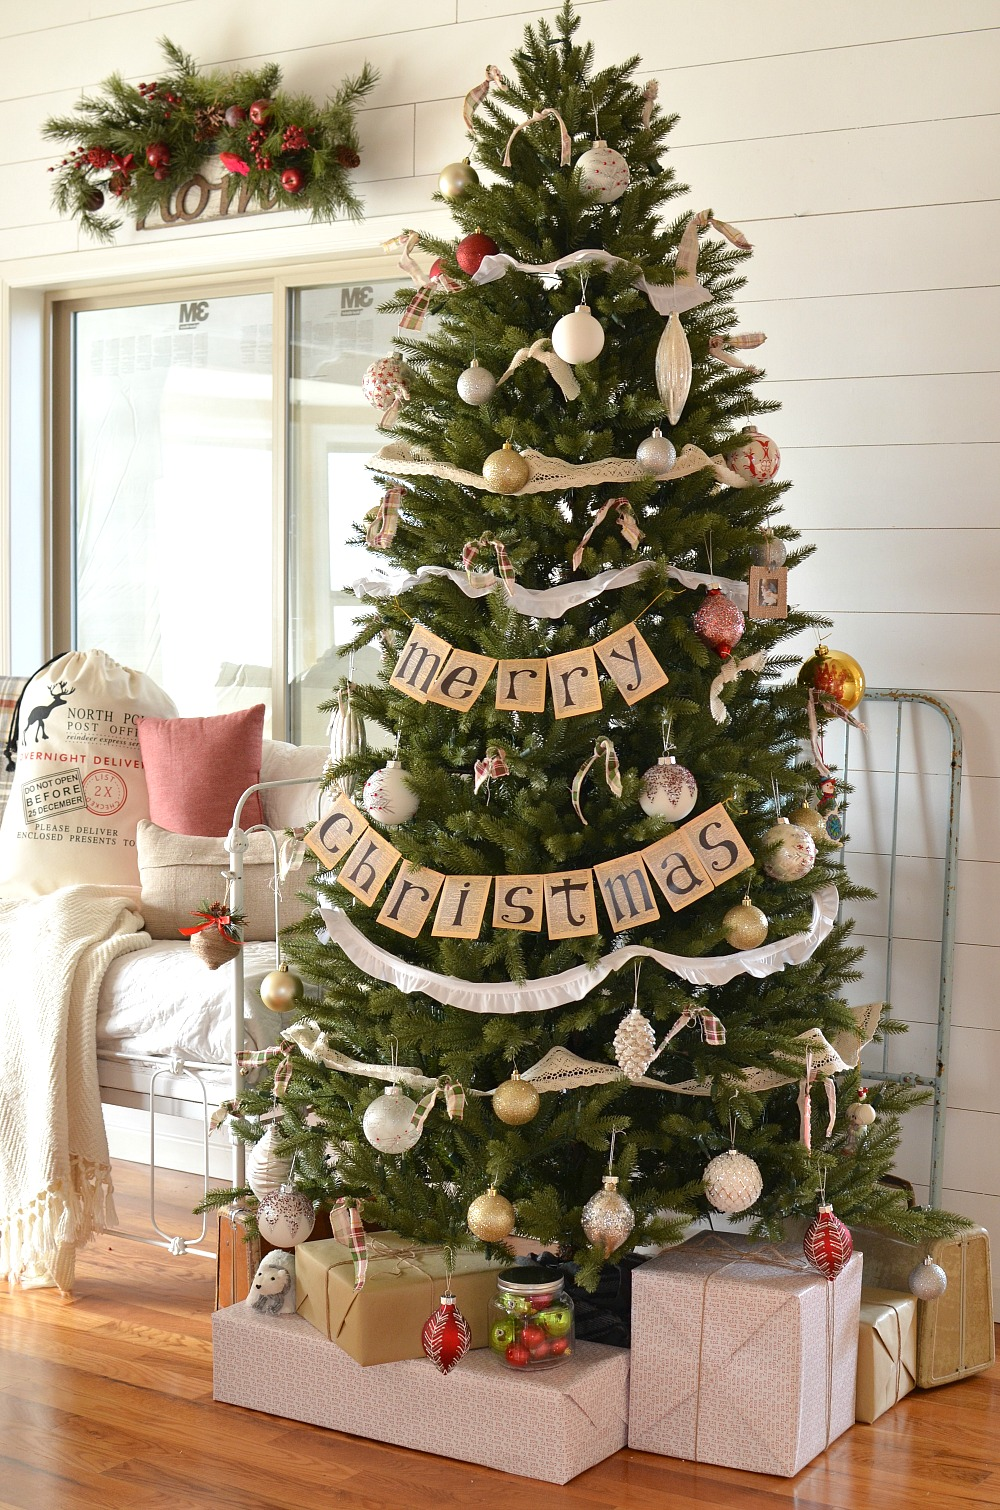 Marvelous Farmhouse Christmas Tree. Vintage Farmhouse Christmas Decor.